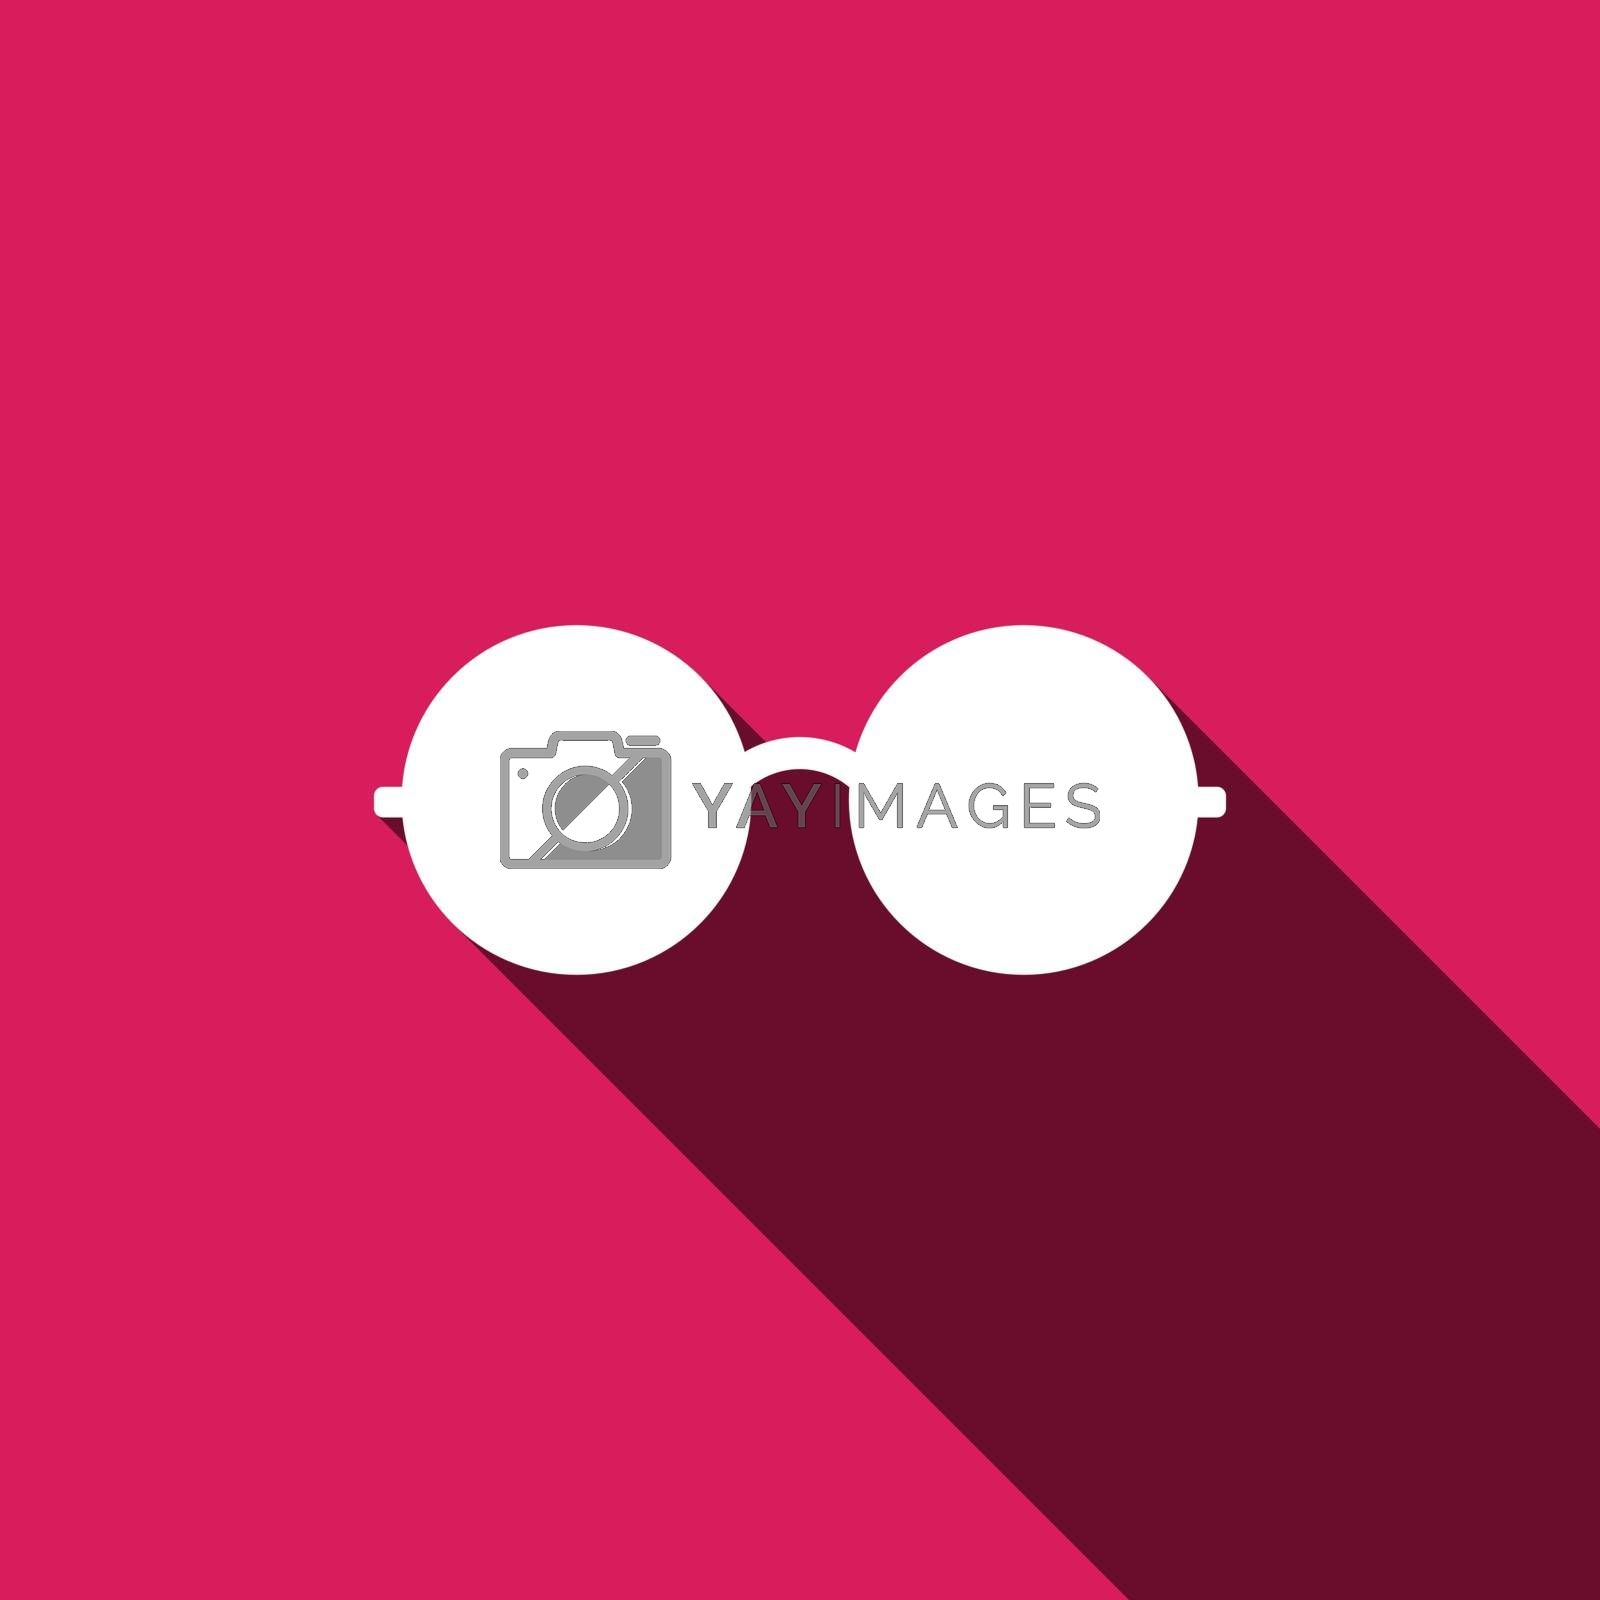 Glasses Icon. Vector illustration. Elements for design. Glasses Icon on pink background.